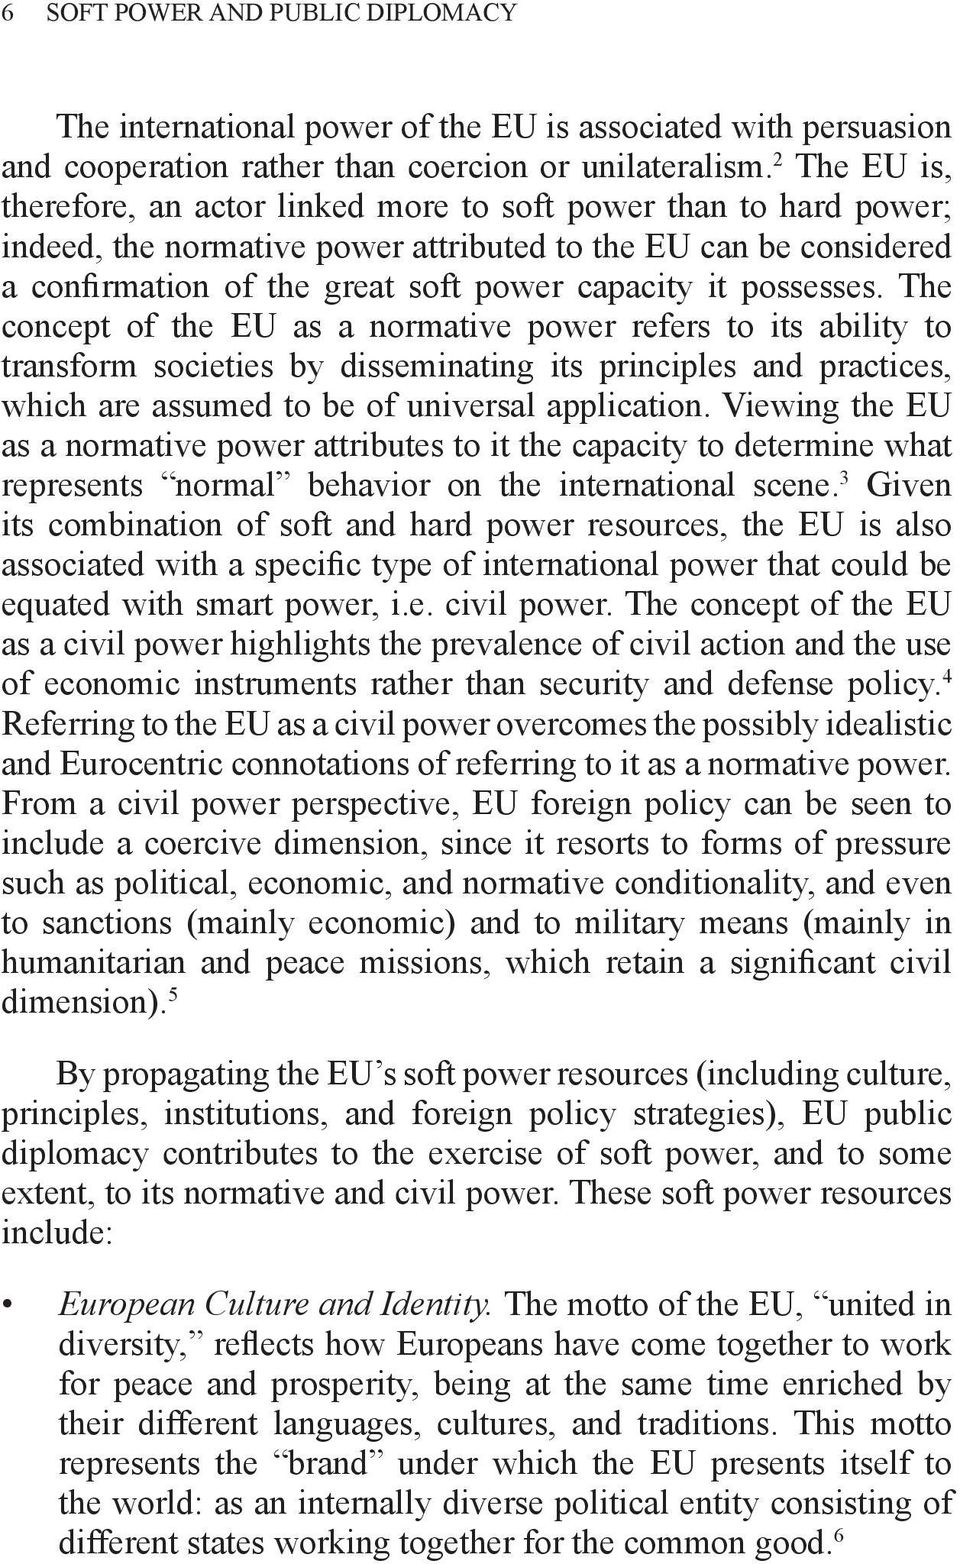 possesses. The concept of the EU as a normative power refers to its ability to transform societies by disseminating its principles and practices, which are assumed to be of universal application.